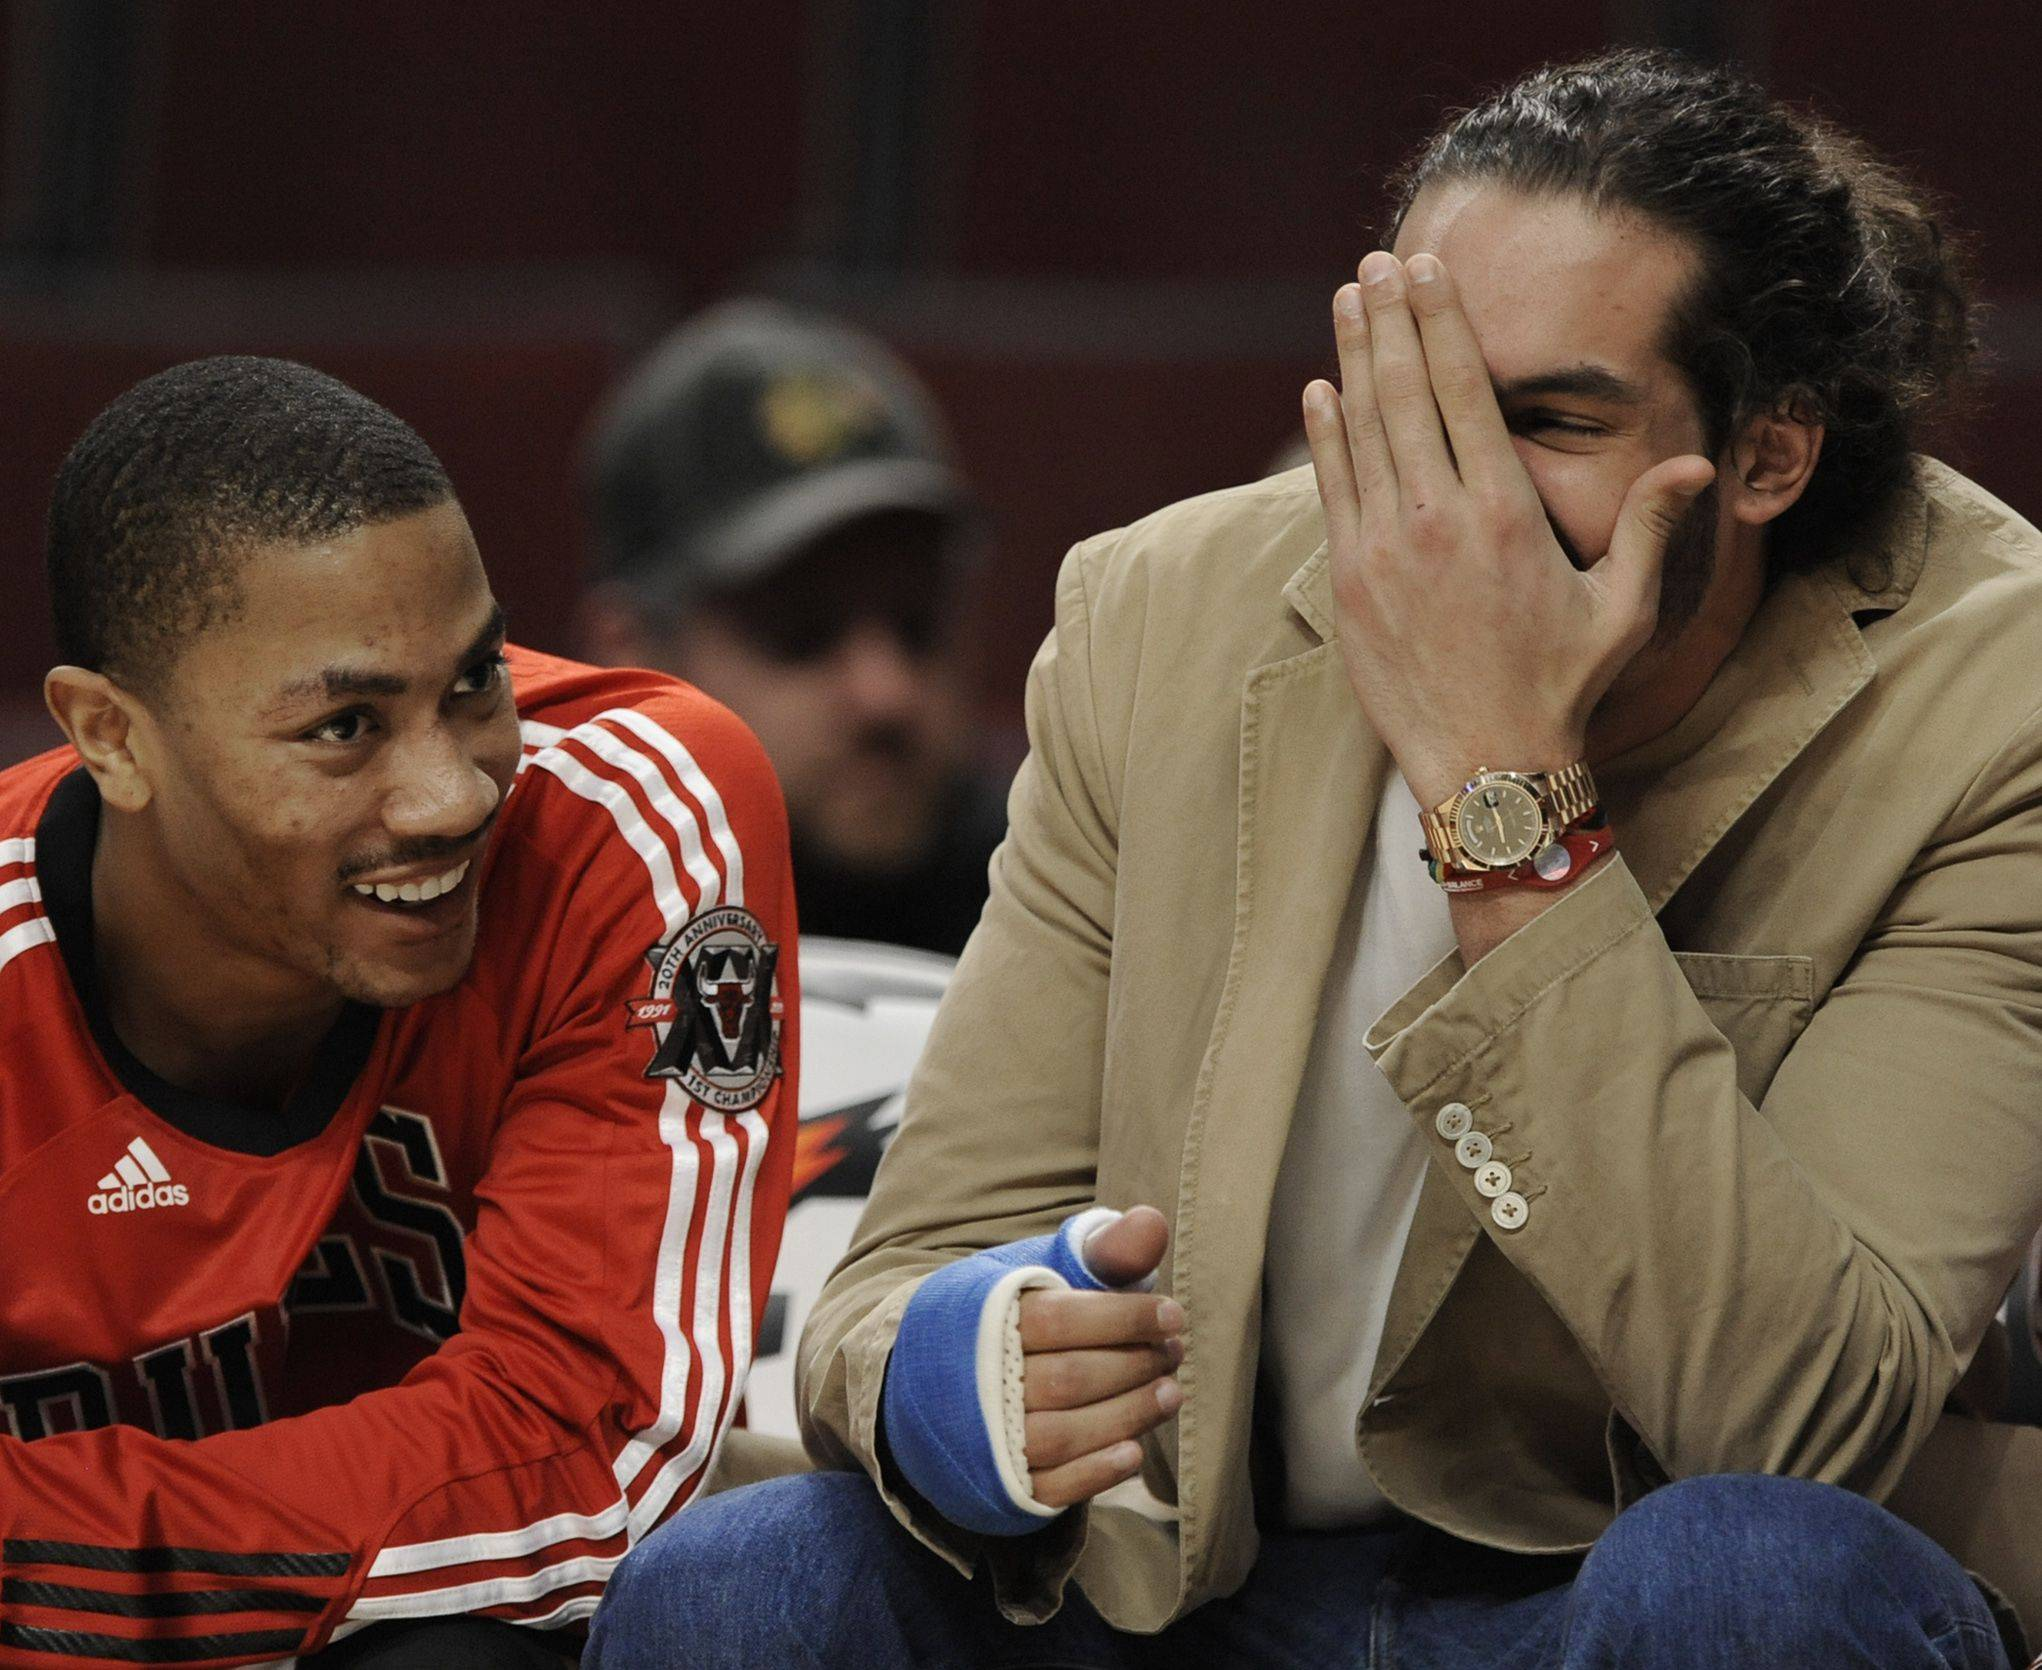 Chicago Bulls' Derrick Rose, left, and Joakim Noah joke around during the final minutes of an NBA basketball game against the Philadelphia 76ers in Chicago, Tuesday, Dec. 21, 2010. Chicago won 121-76.